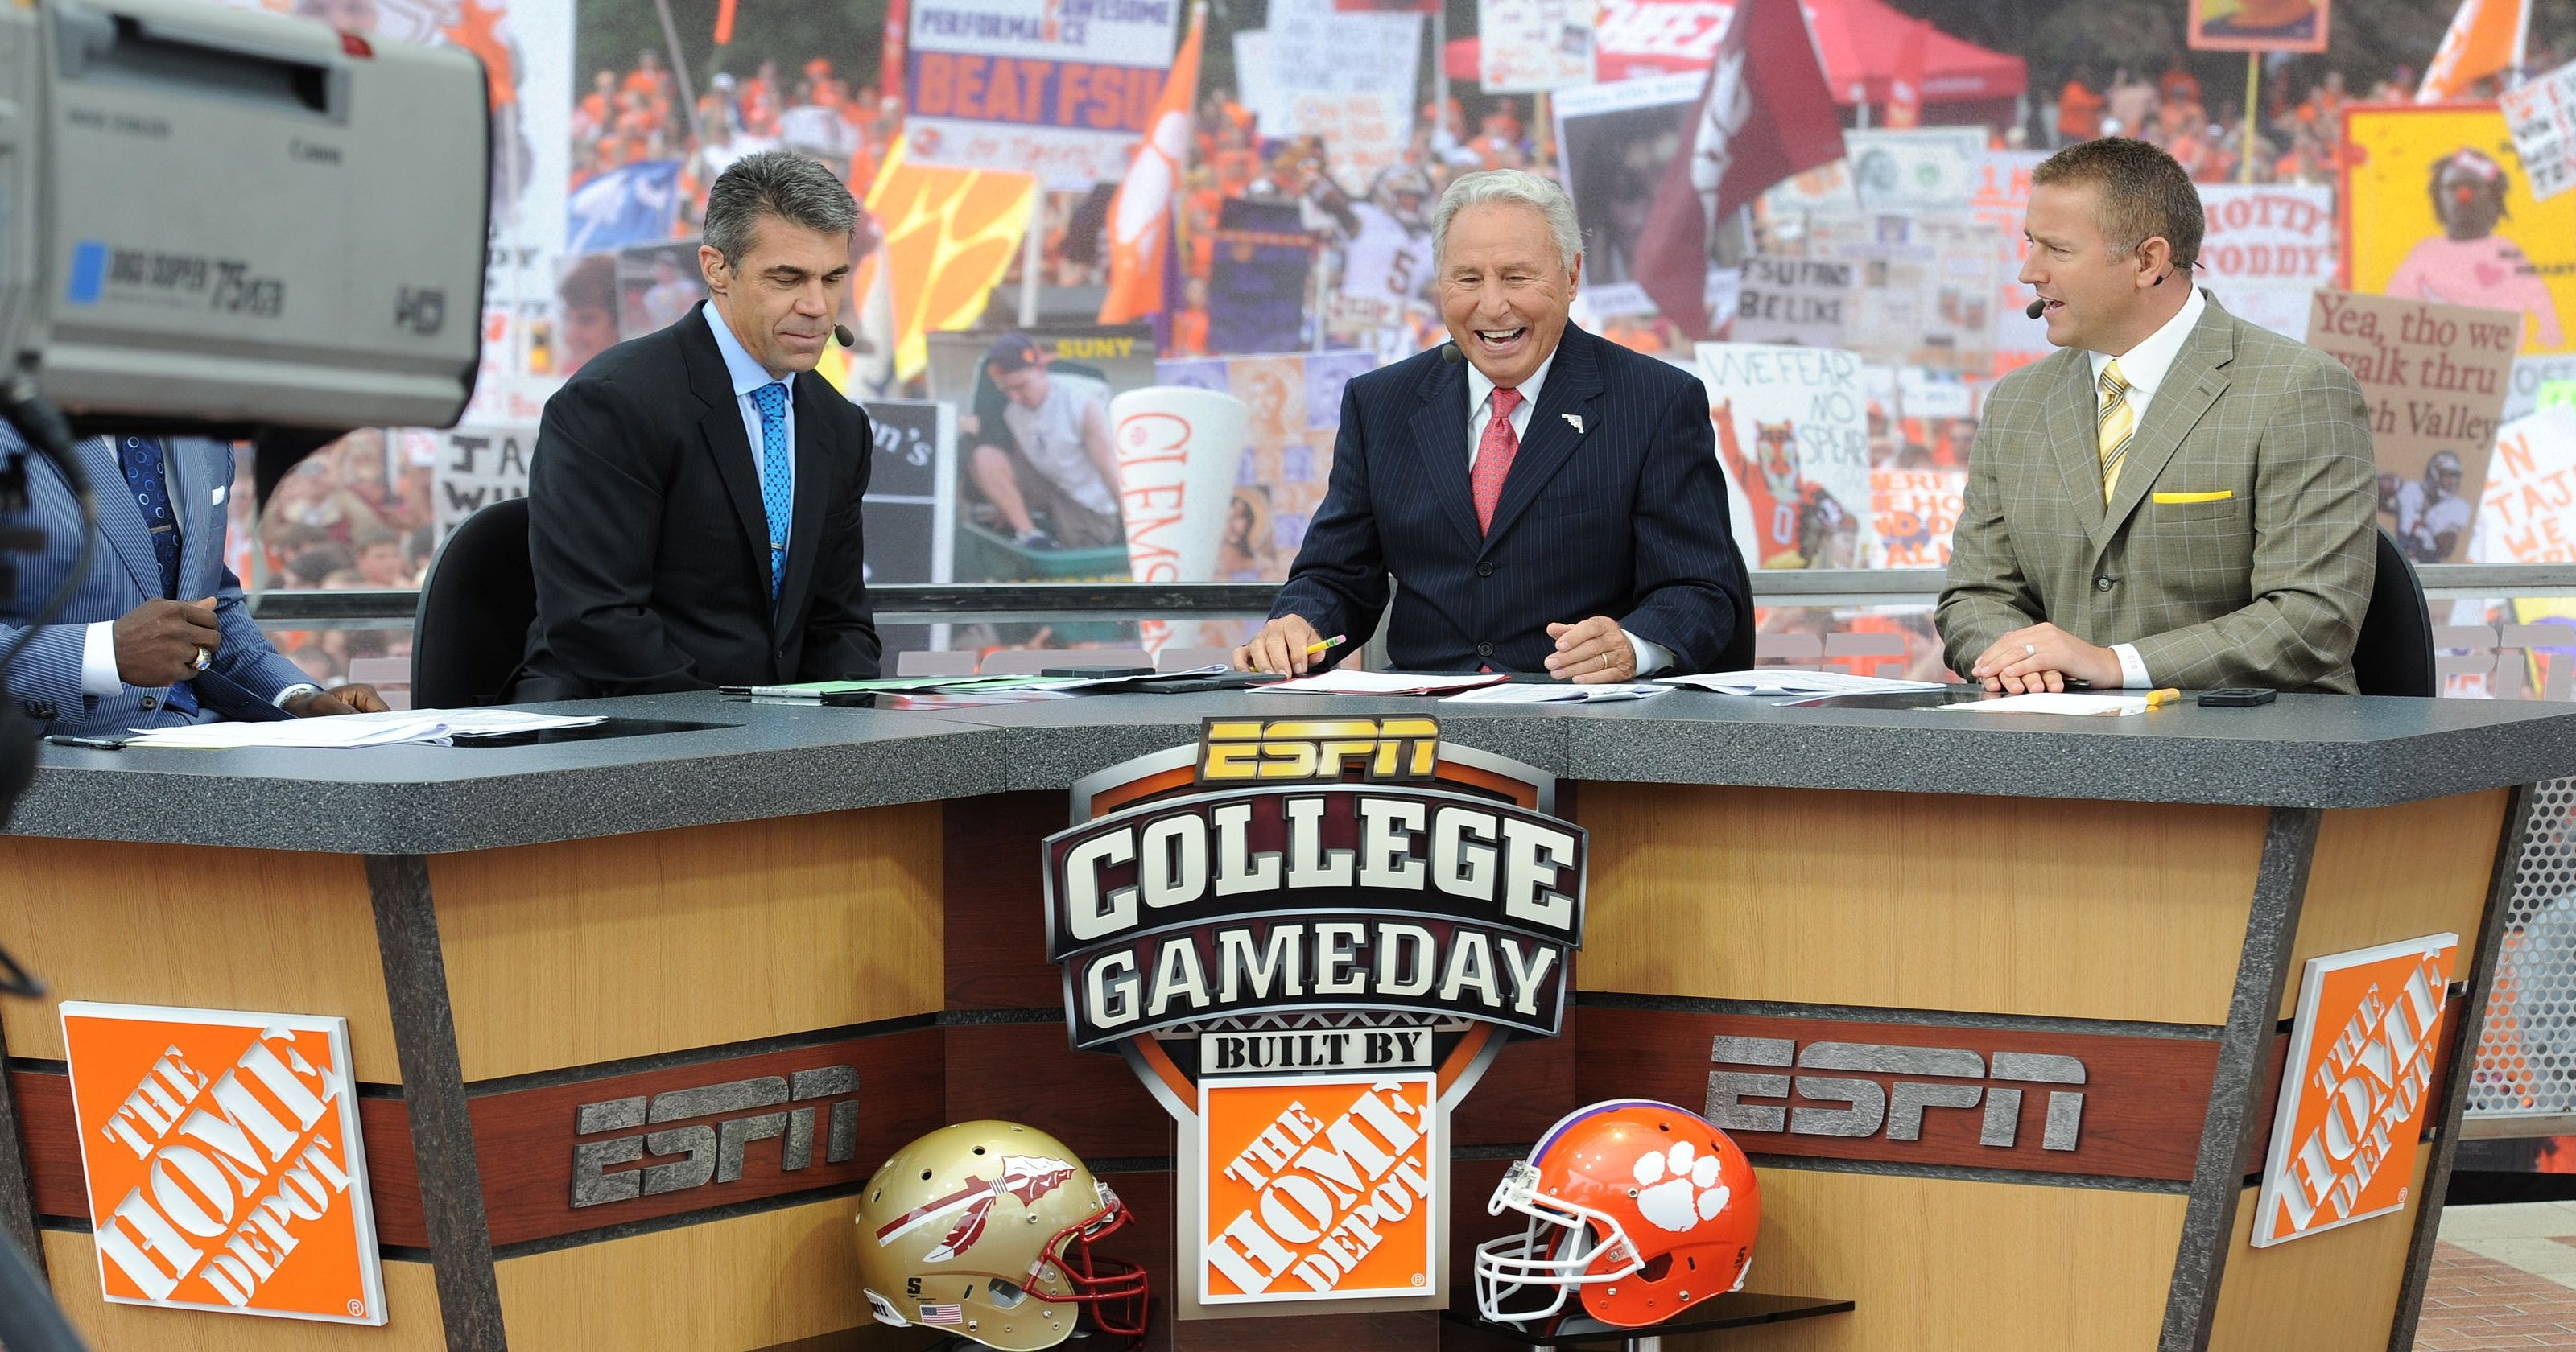 Is ESPN's College Gameday coming to Clemson?